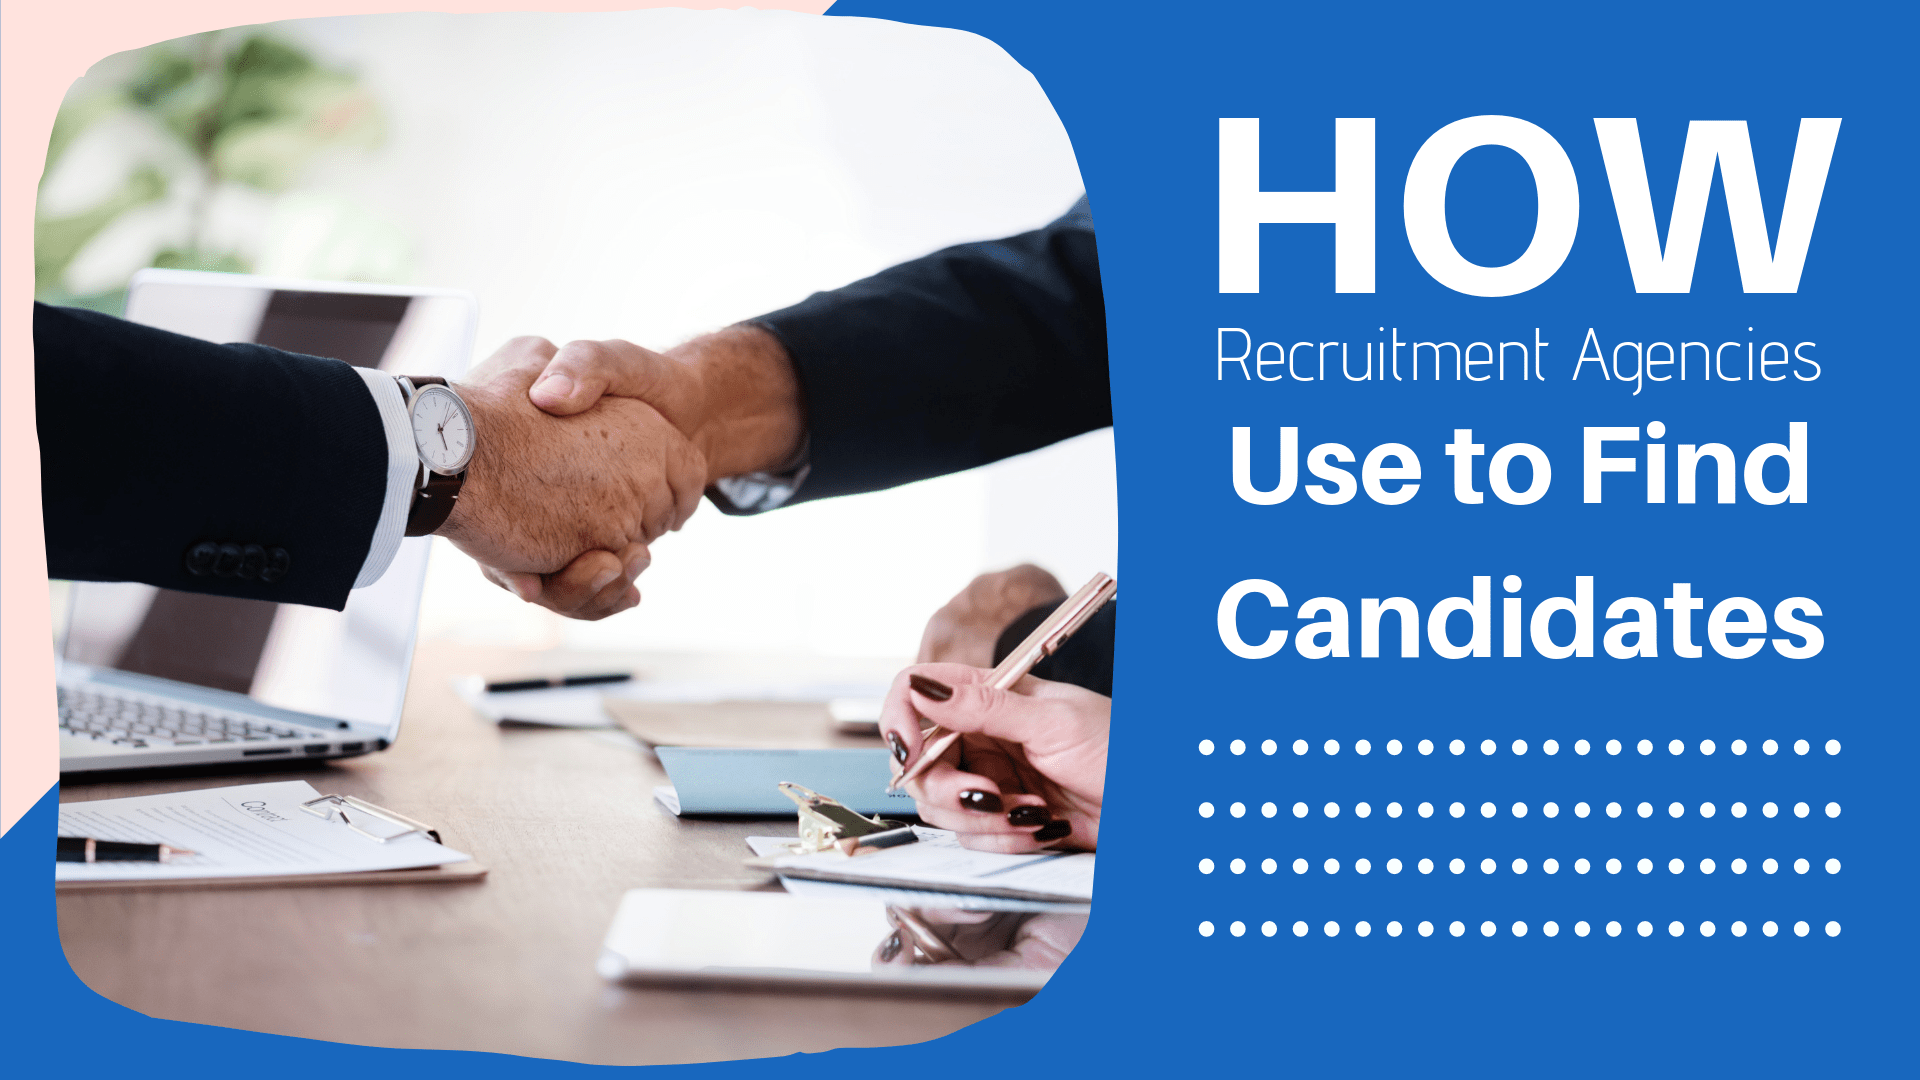 Know the Channels That Recruitment Agencies Use to Find Candidates image